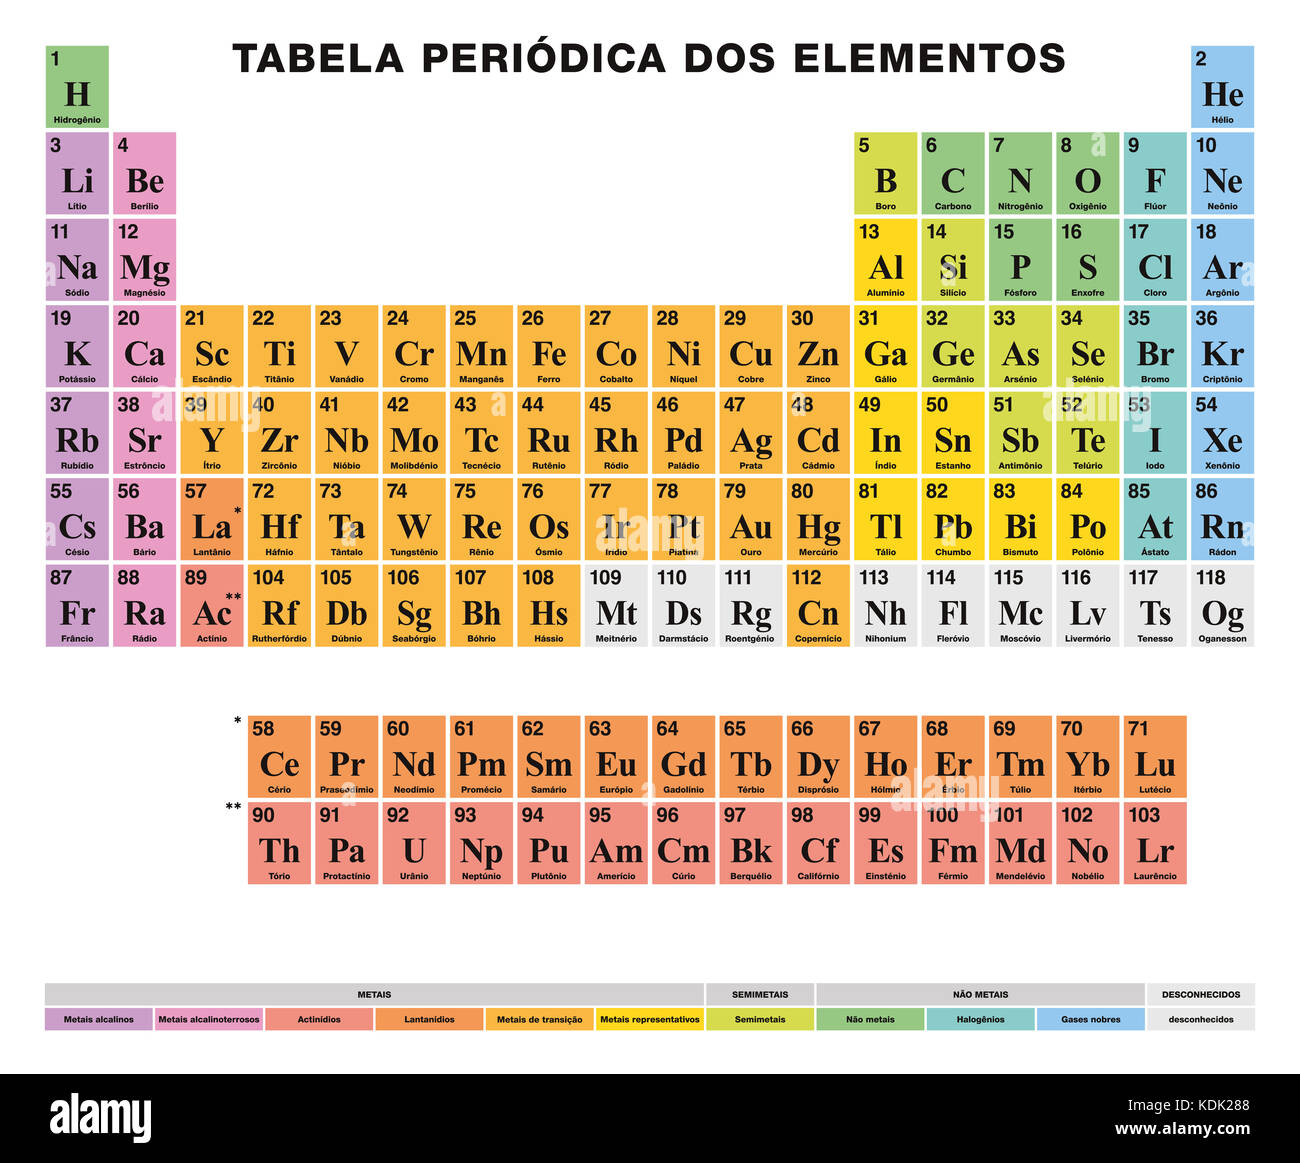 Periodic table of the elements portuguese labeling tabular stock periodic table of the elements portuguese labeling tabular arrangement 118 chemical elements atomic numbers symbols names and color cells urtaz Choice Image